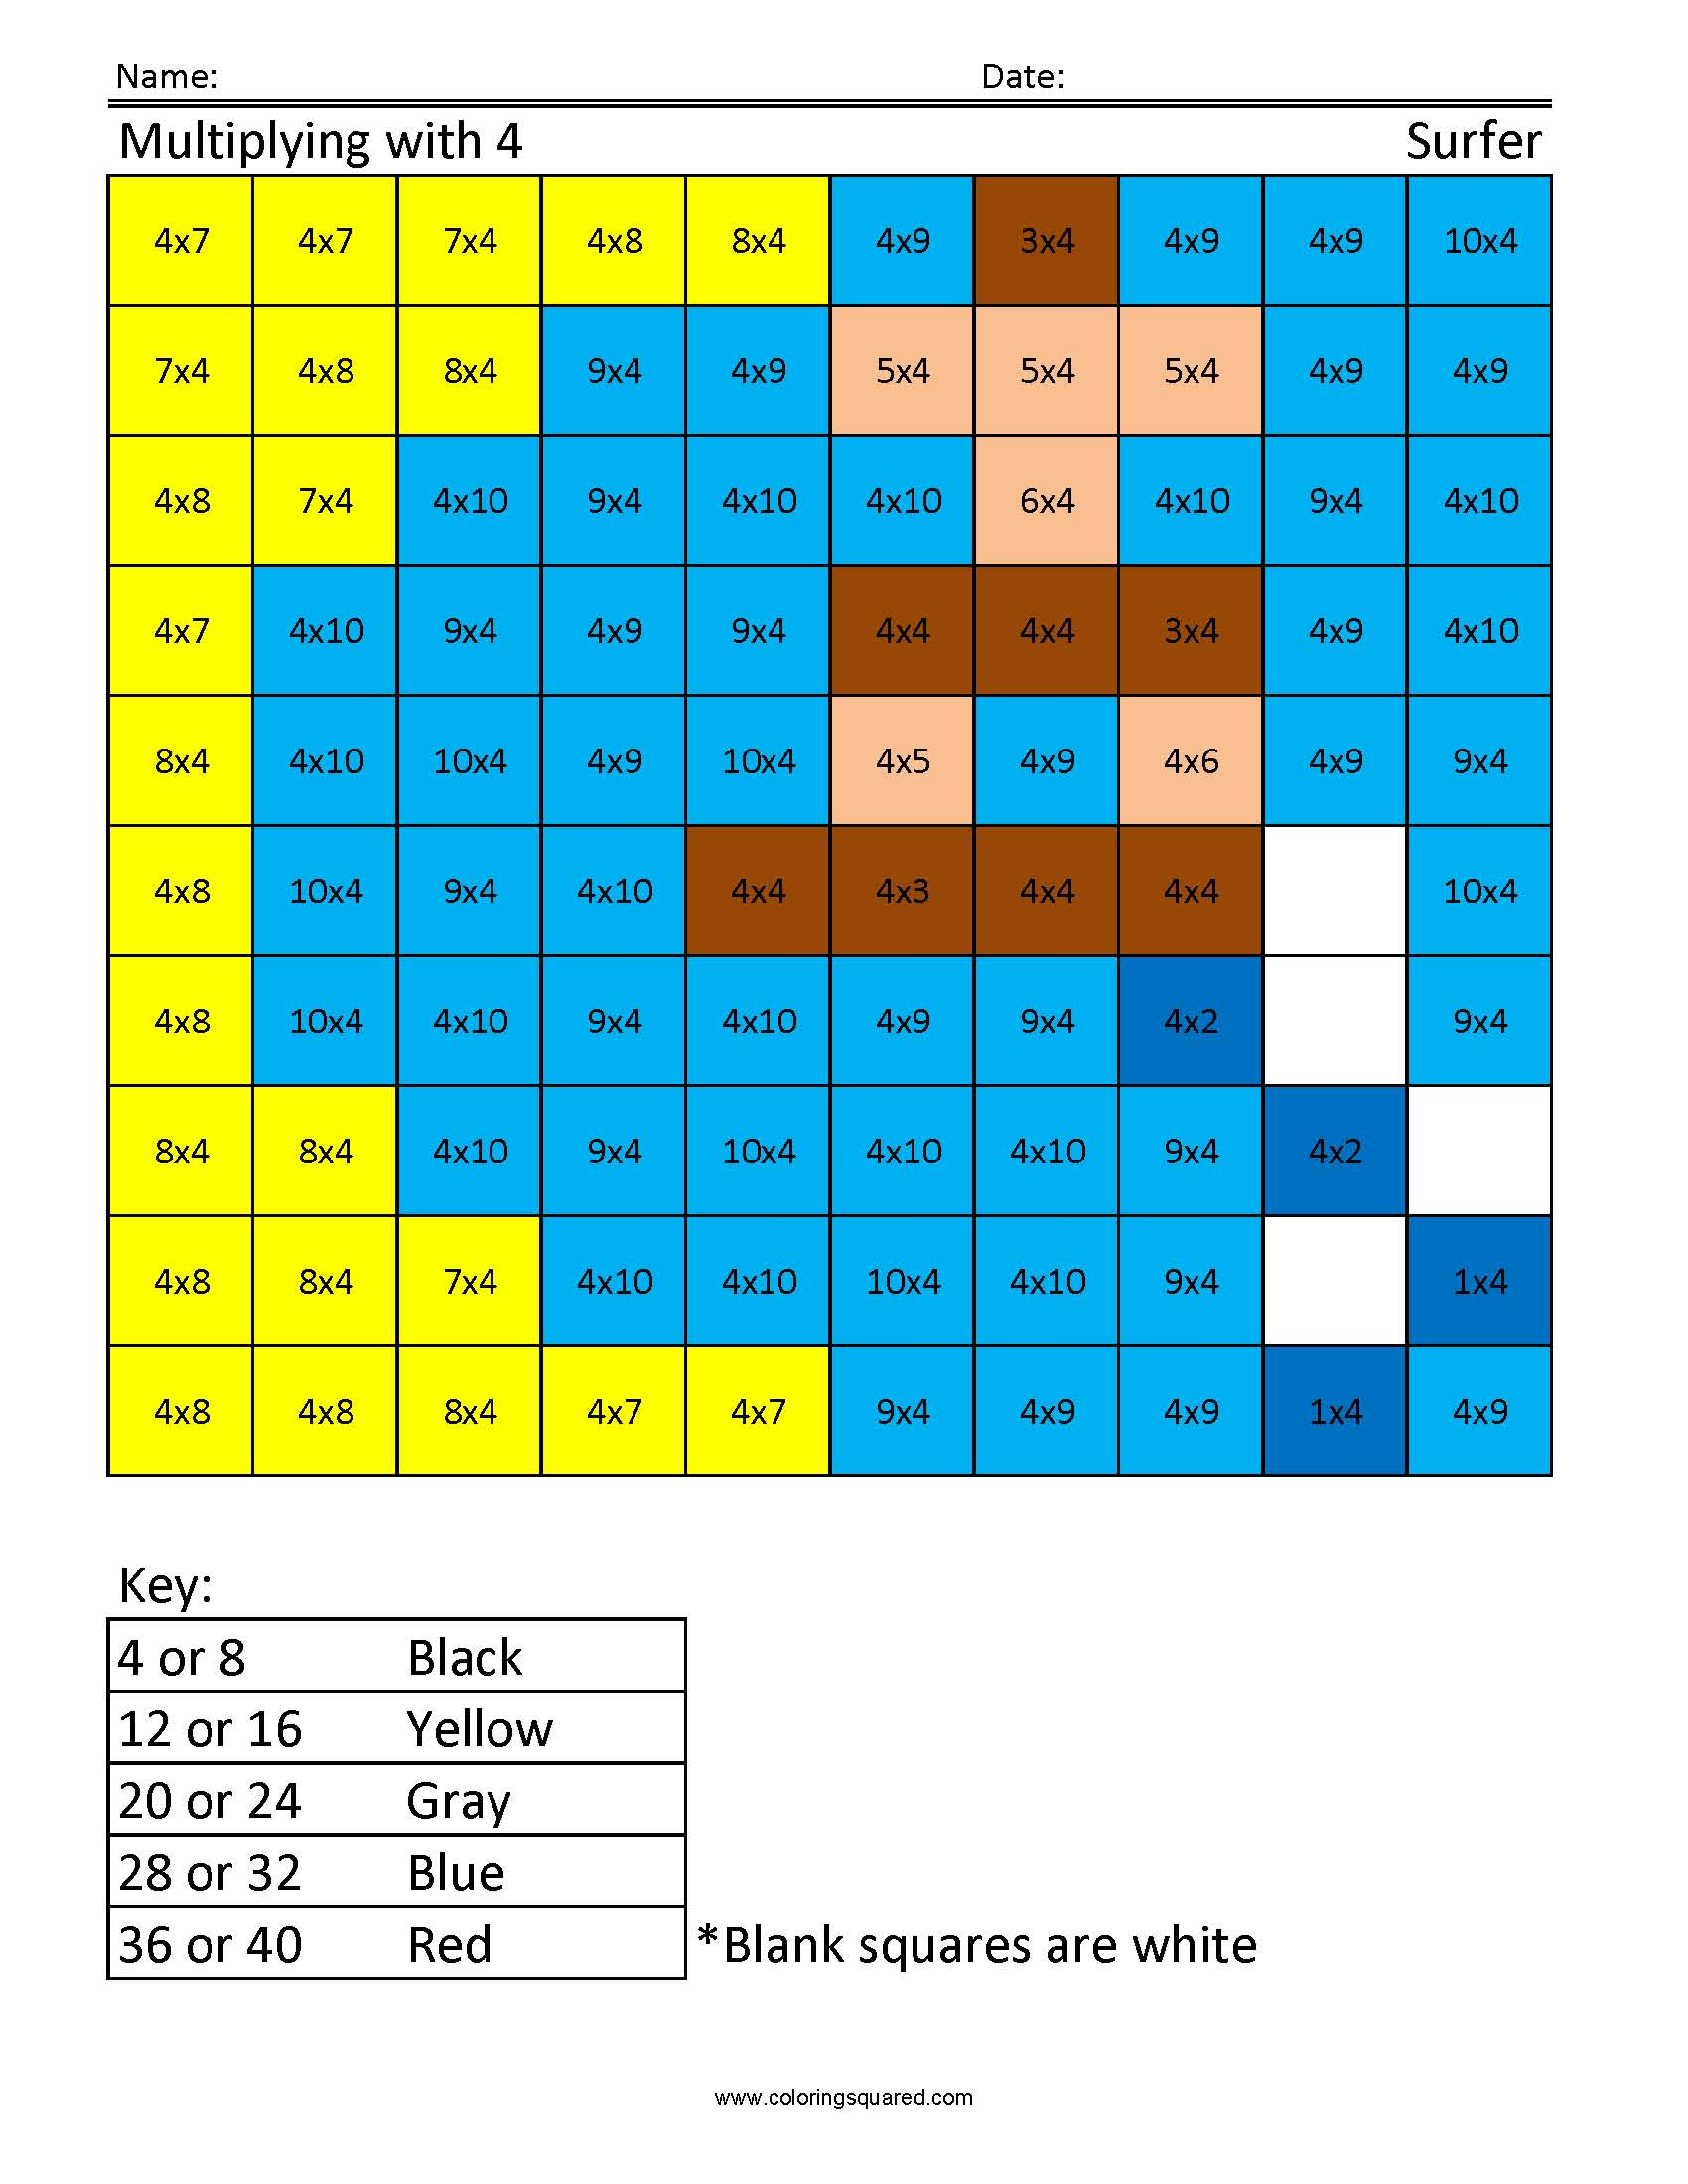 Jm4 surfer free multiplication times table practice for Table 5 multiplication